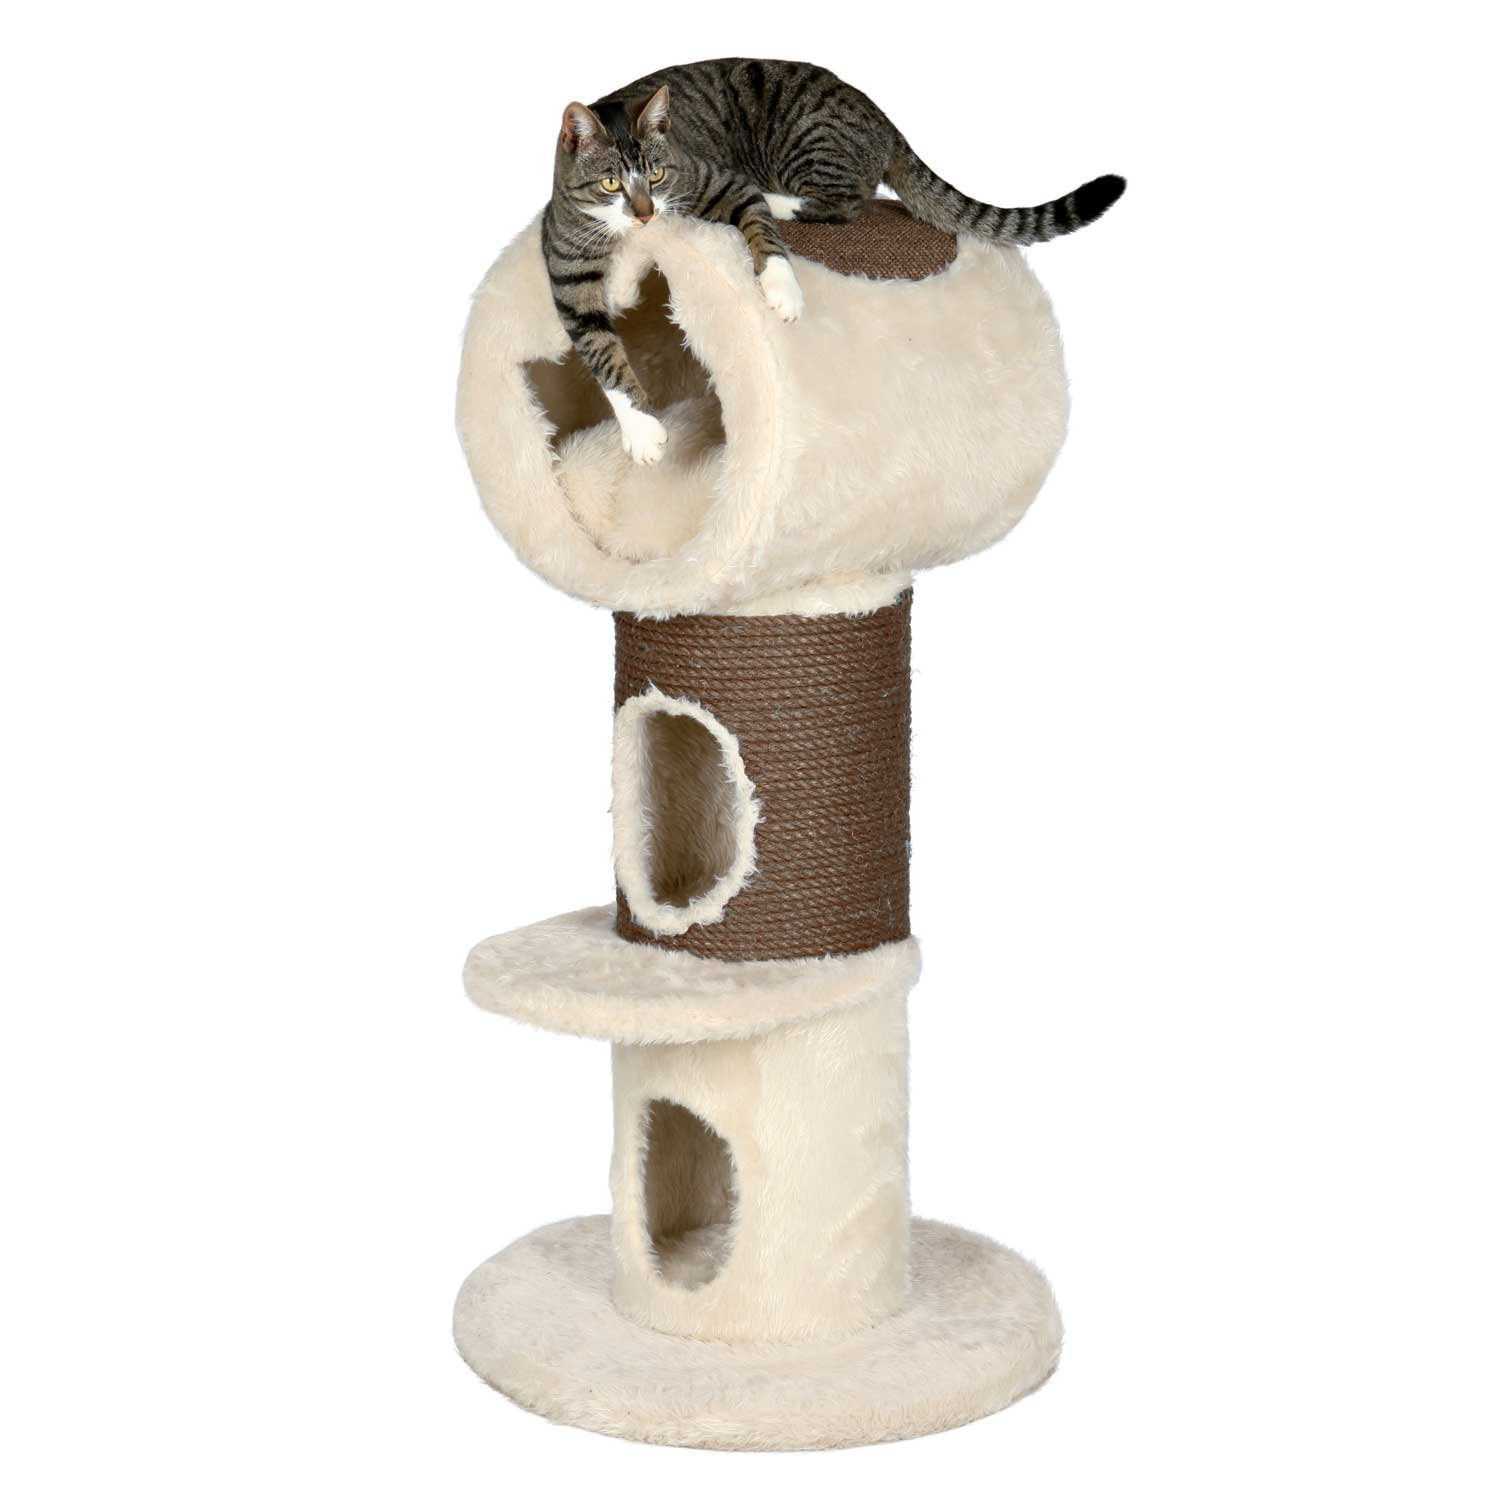 Trixie Nico 3-Story Cat Condo in Beige